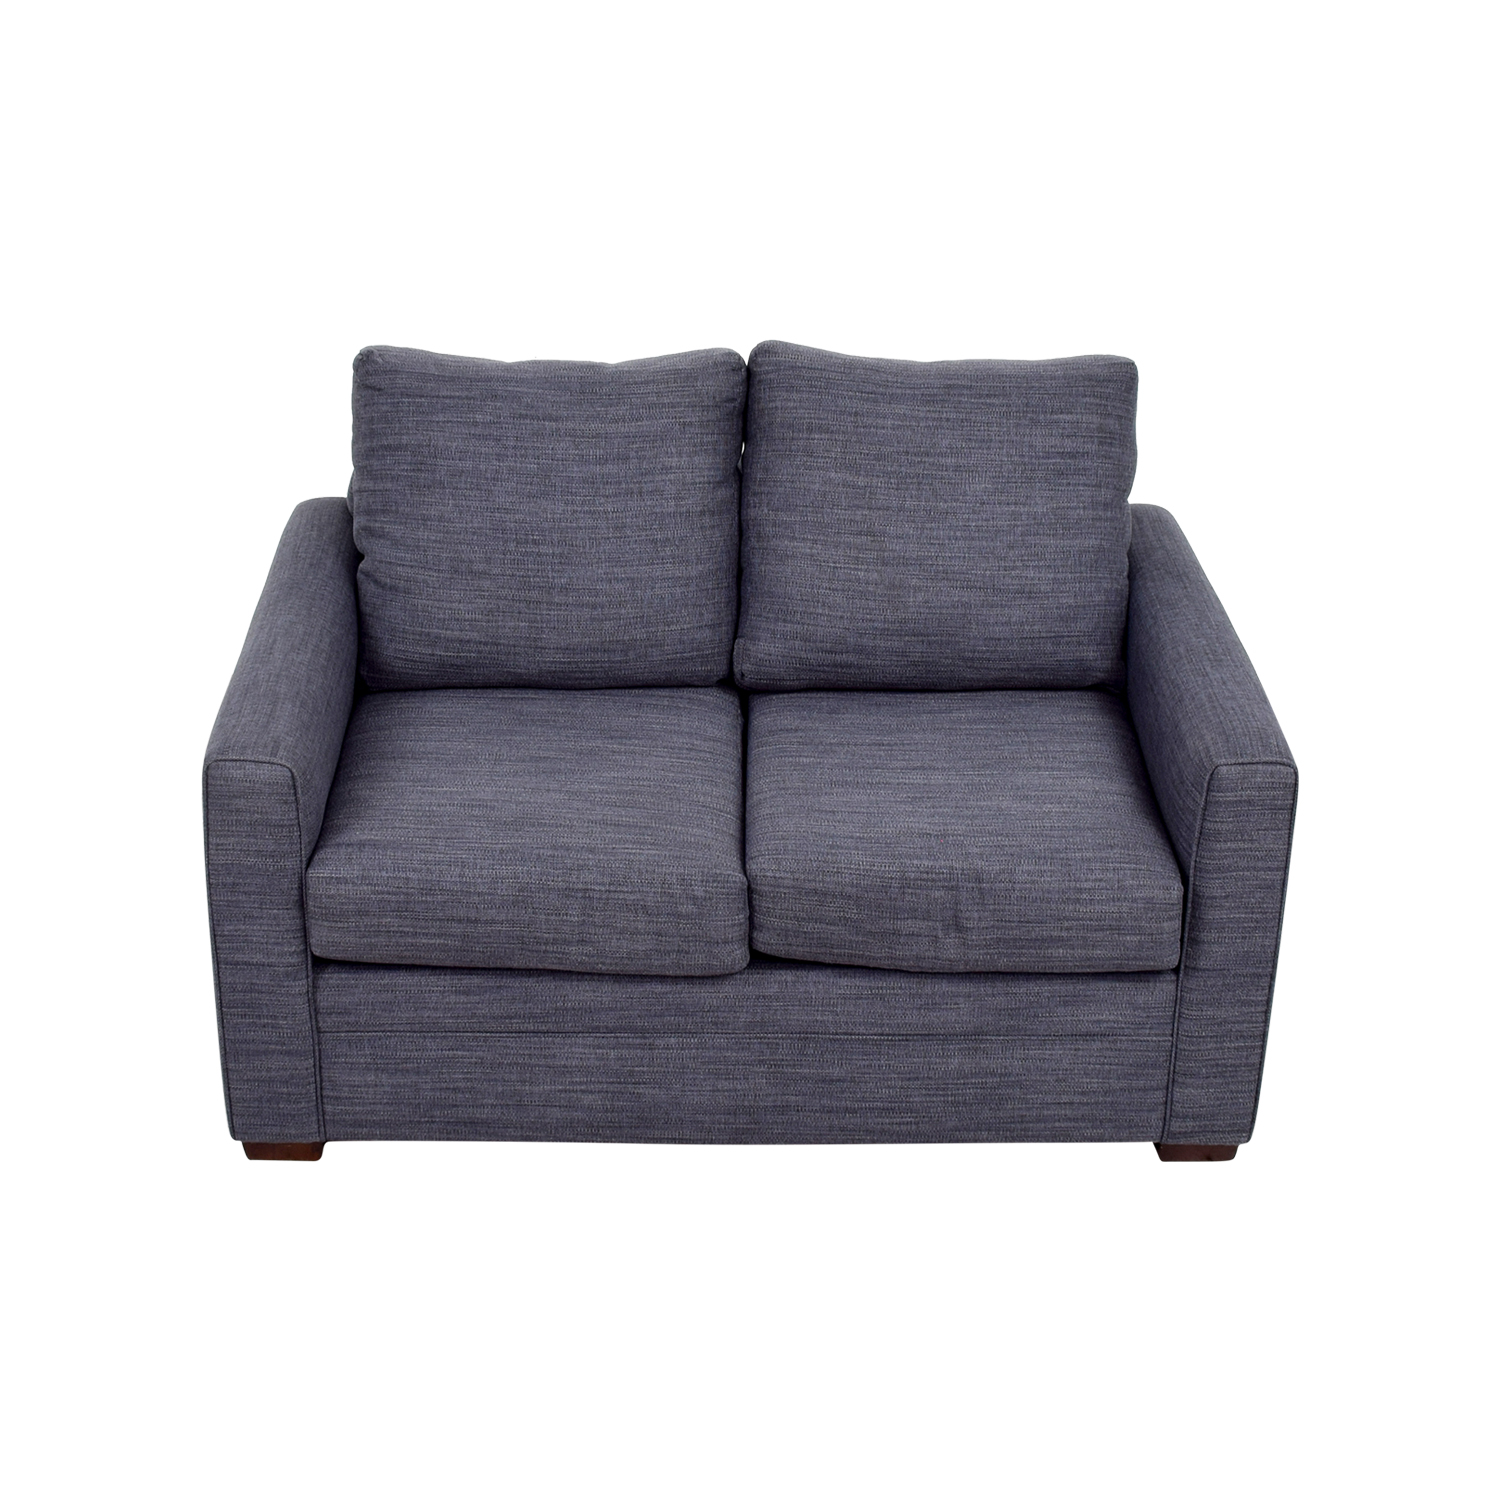 Bobs Furniture Bobs Furniture Navy Blue Love Seat for sale